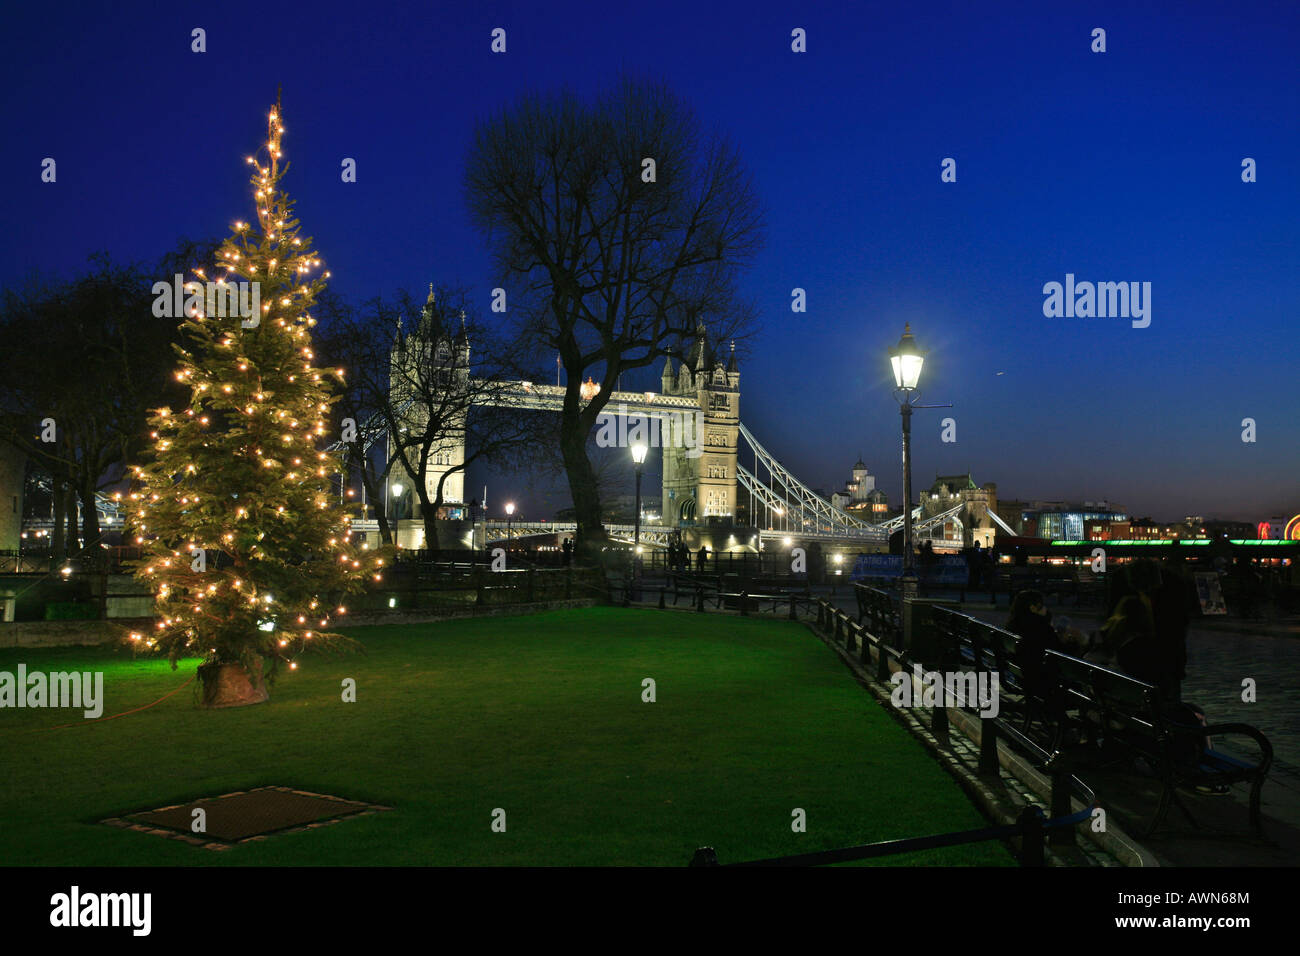 Christmas Tree Scenery Part - 44: Christmas Scenery With Tower Bridge And Christmas Tree, London, UK